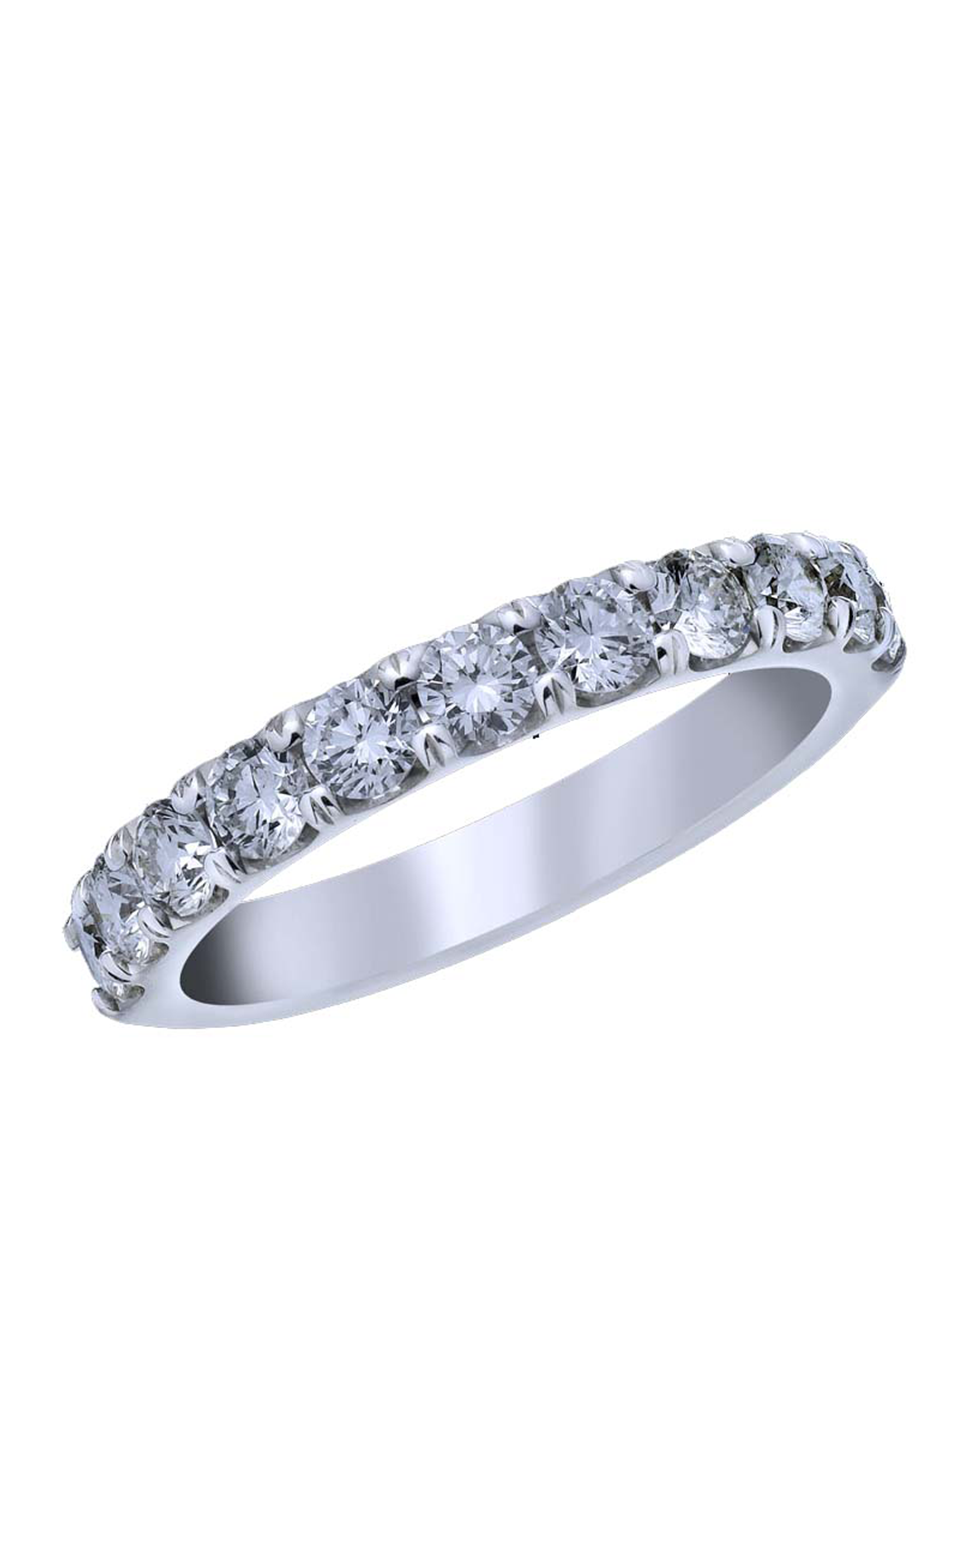 Koehn & Koehn Signature Wedding band R01034 product image